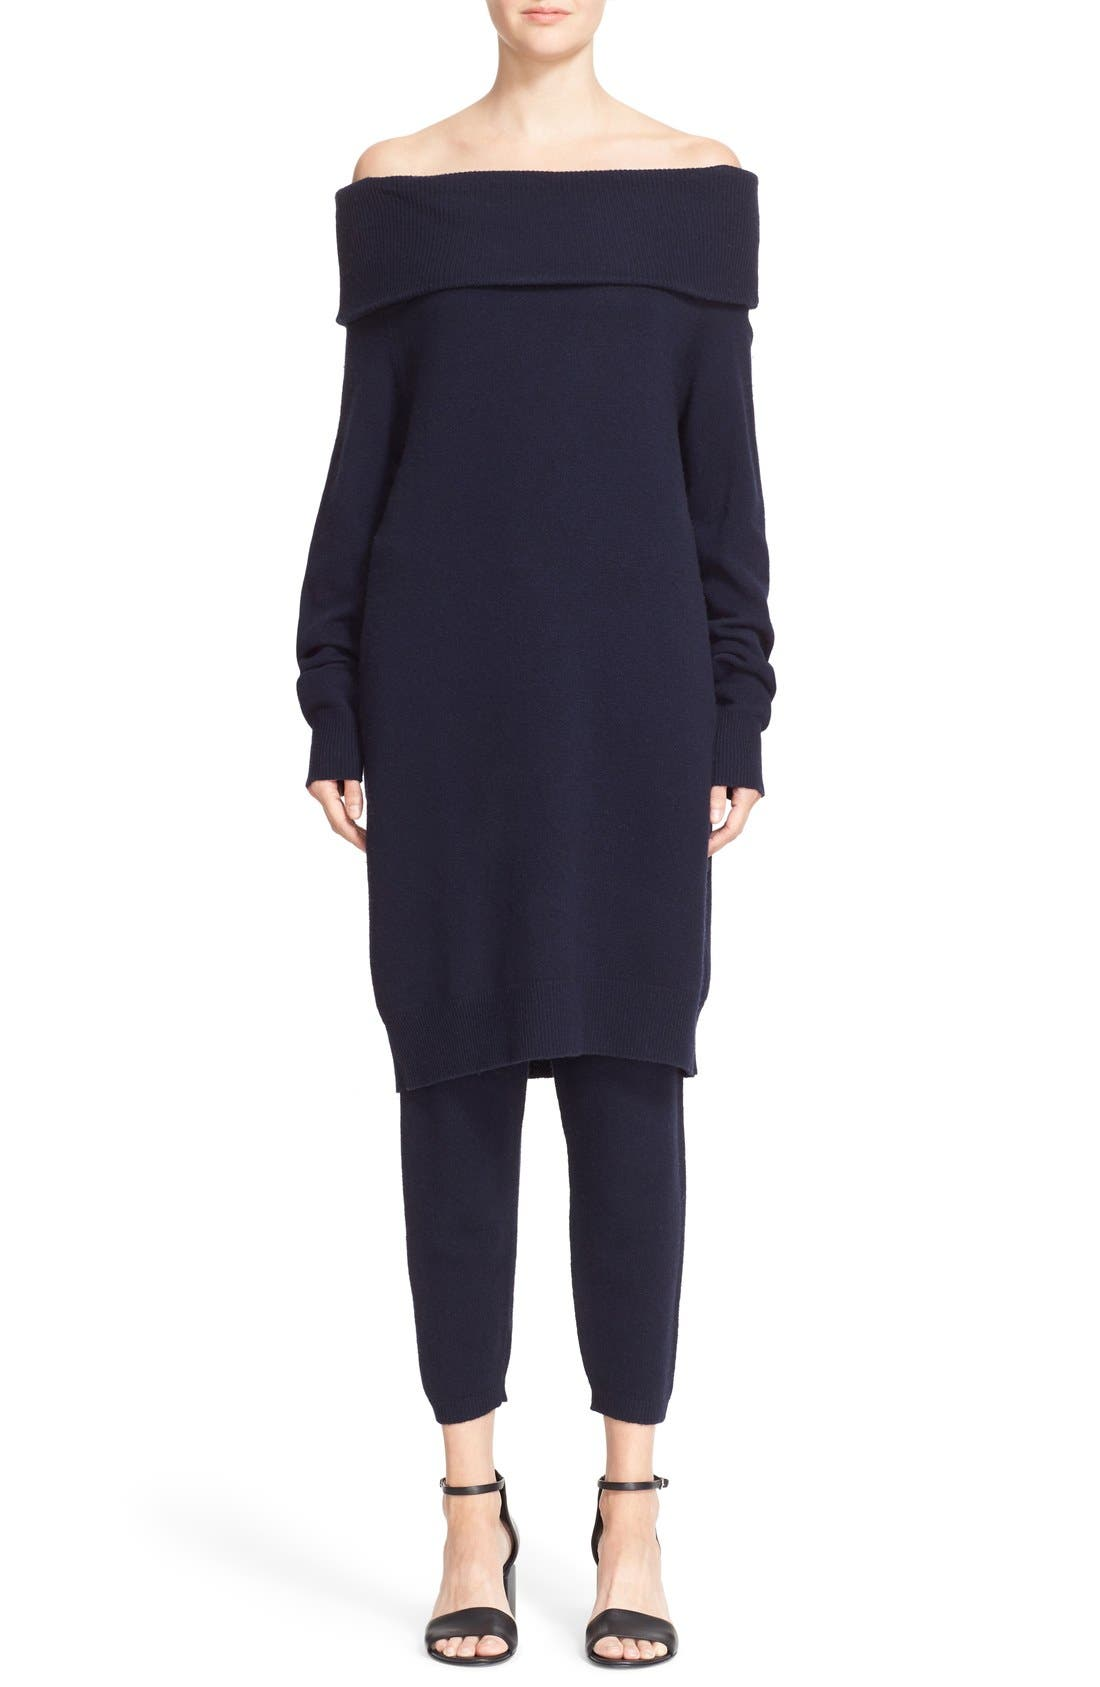 Alternate Image 1 Selected - T by Alexander Wang Wool & Cashmere Off the Shoulder Sweater